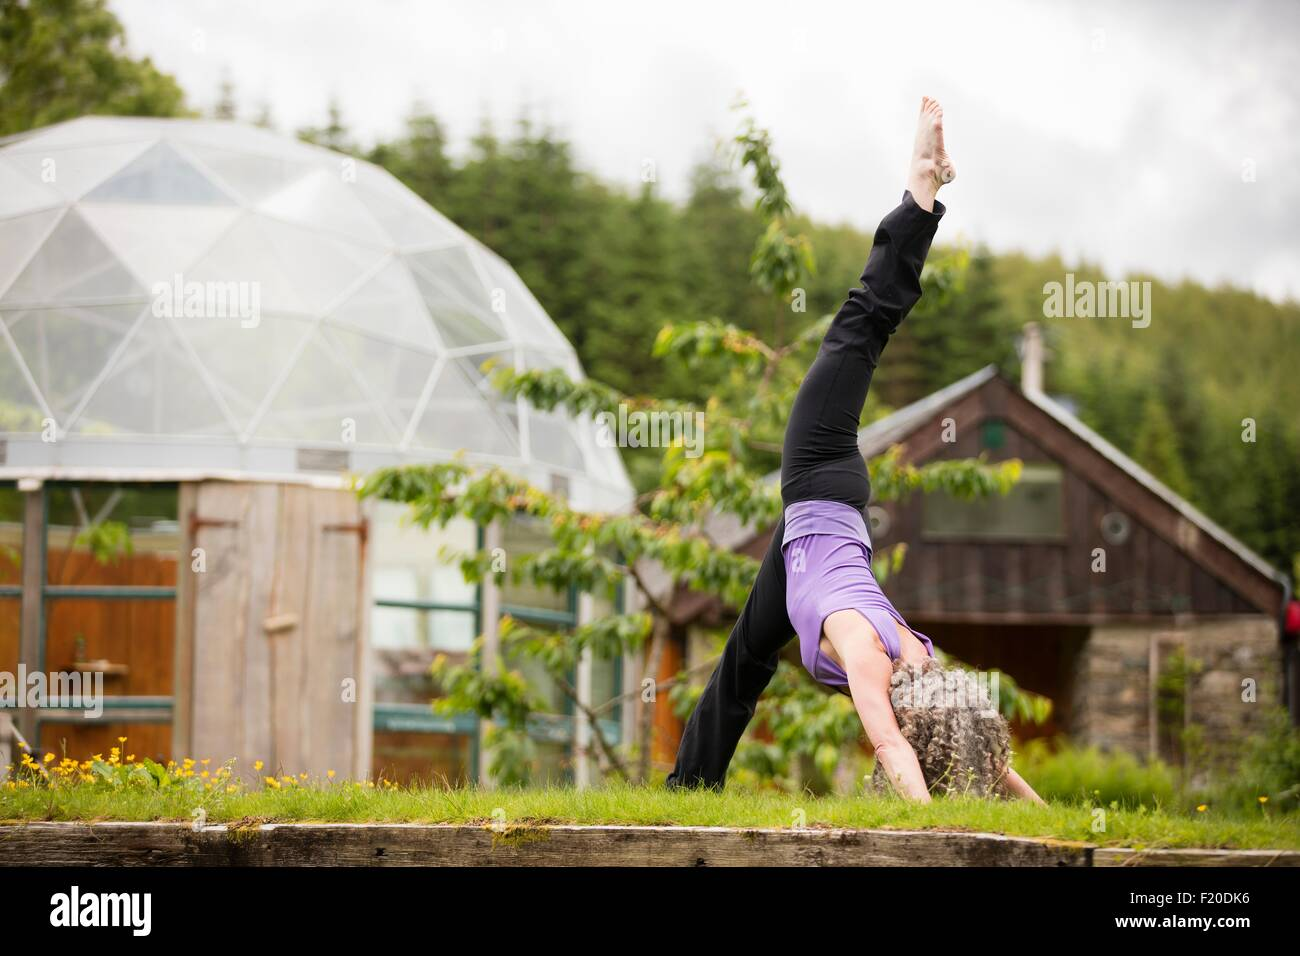 Mature woman practicing yoga with leg raised in eco lodge garden - Stock Image